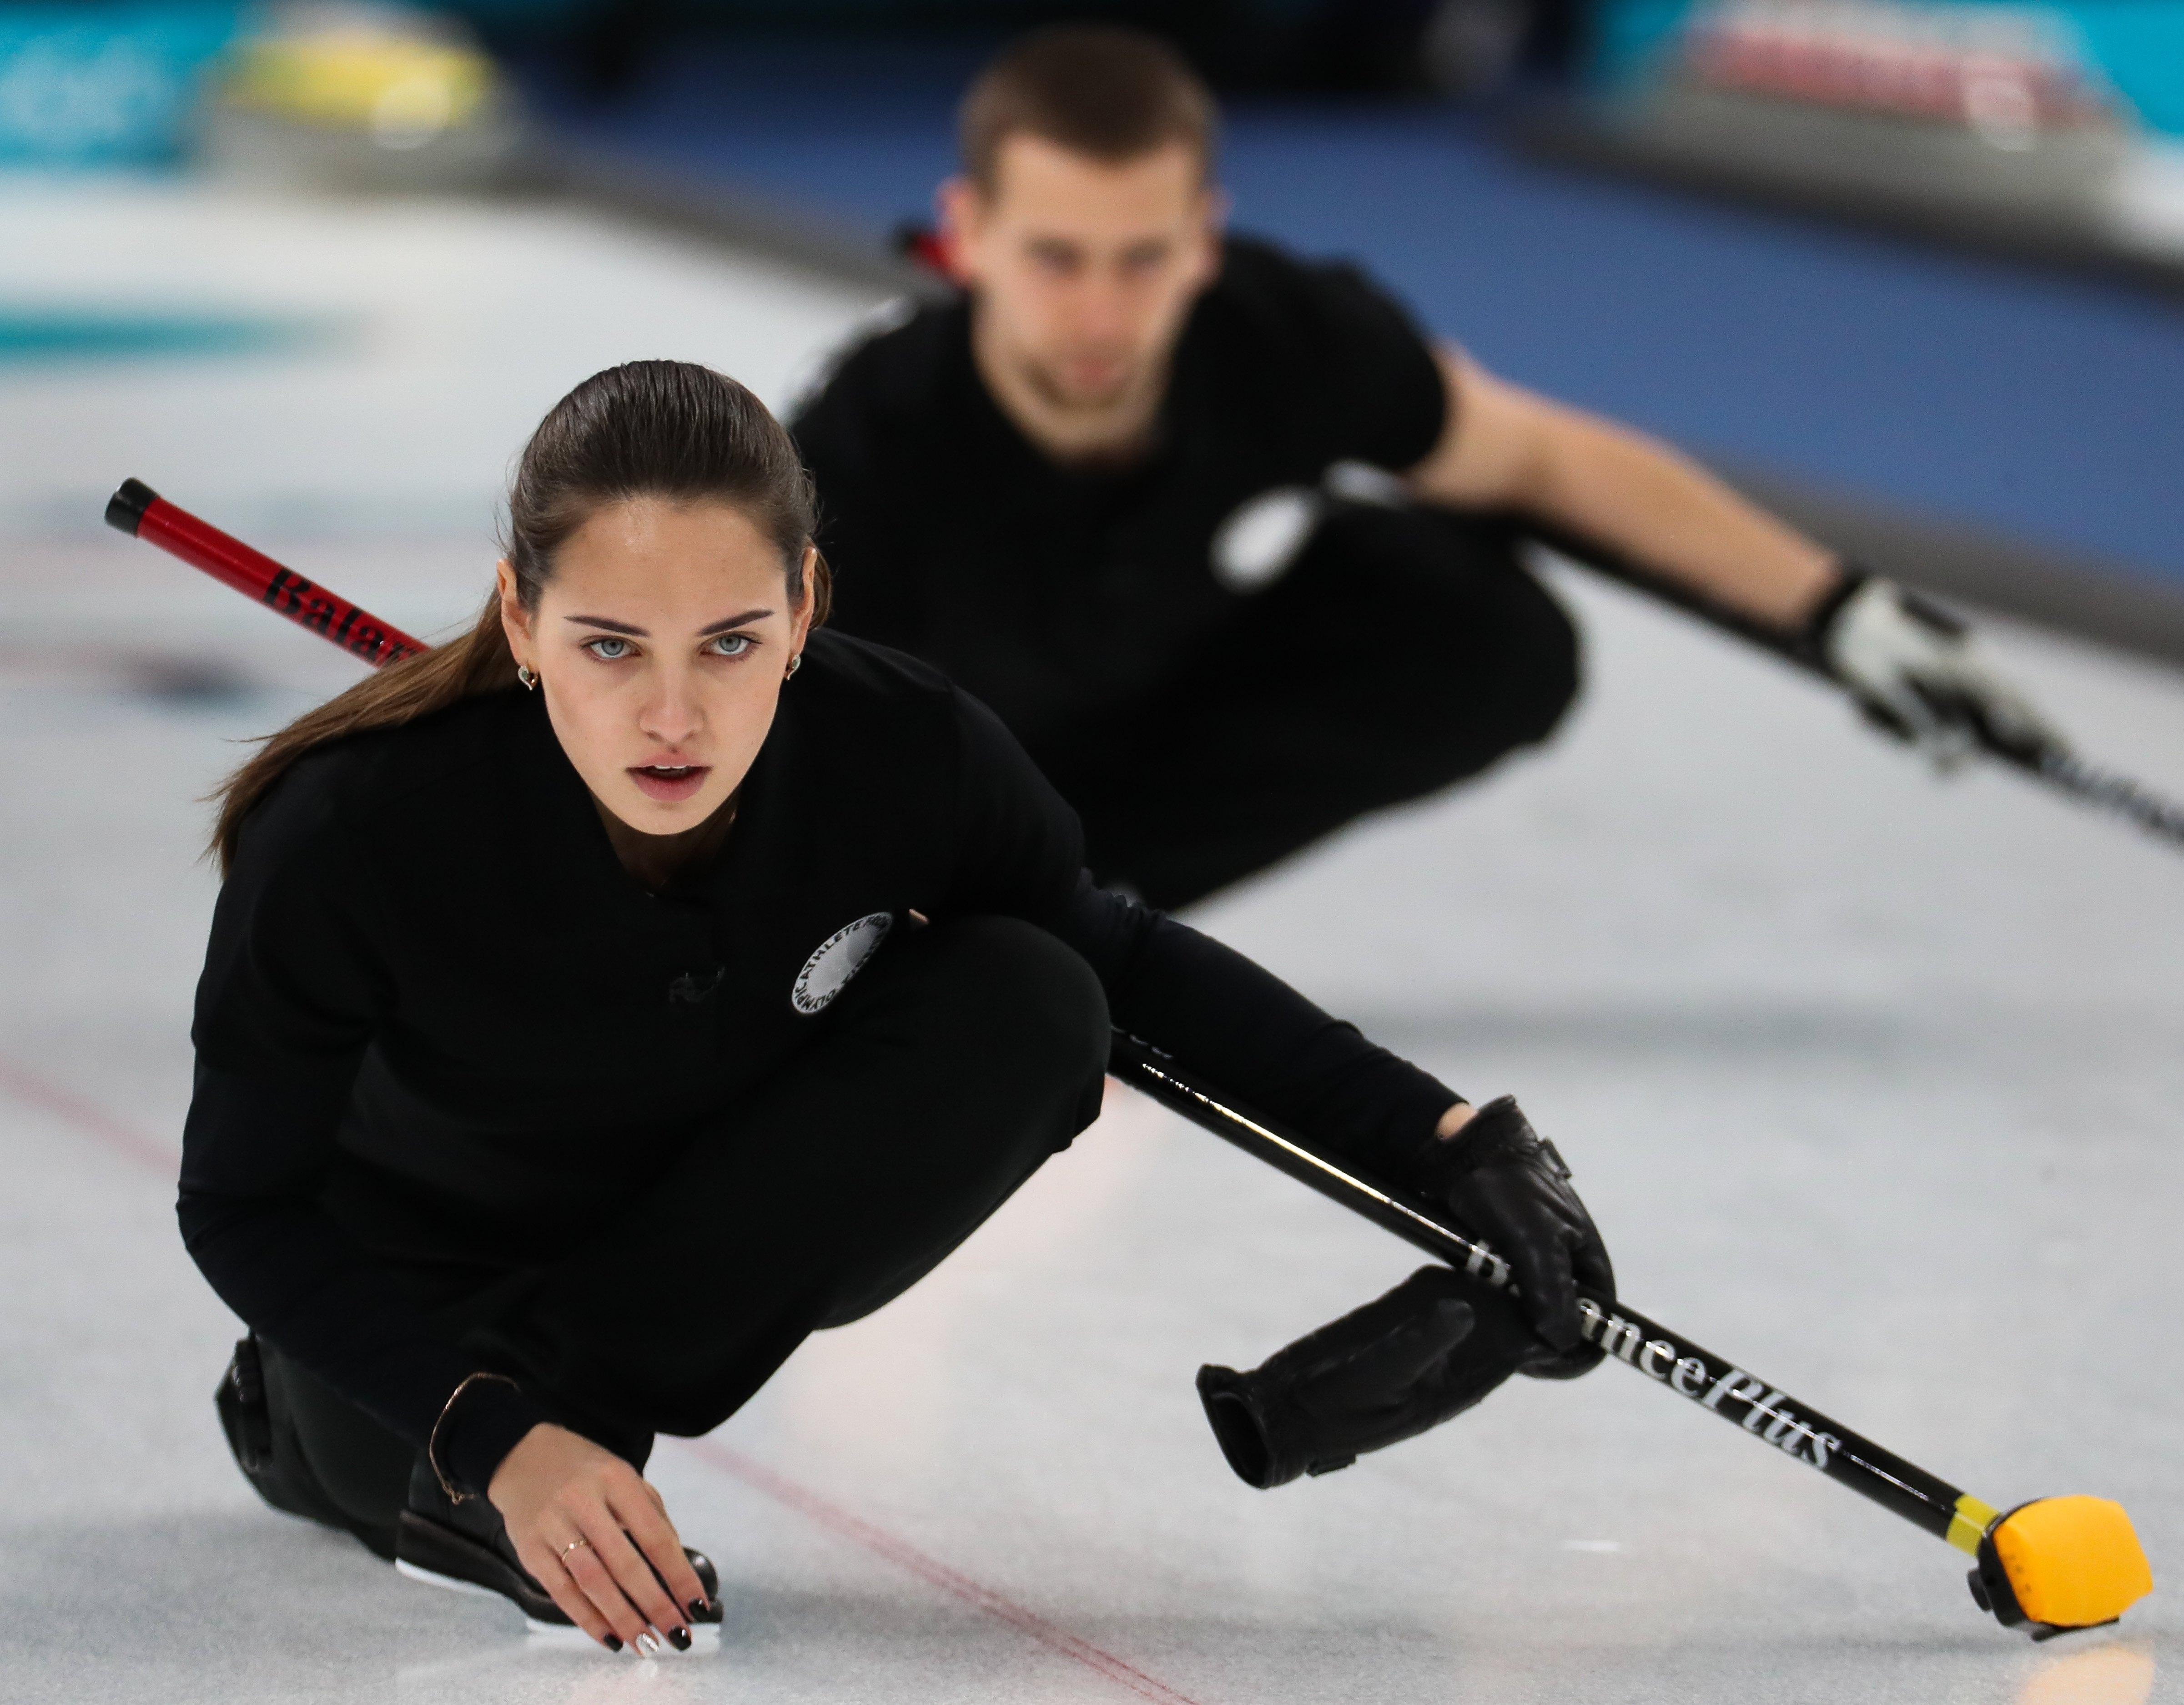 Fans have been going wild for a Russian curler at the Winter Olympics